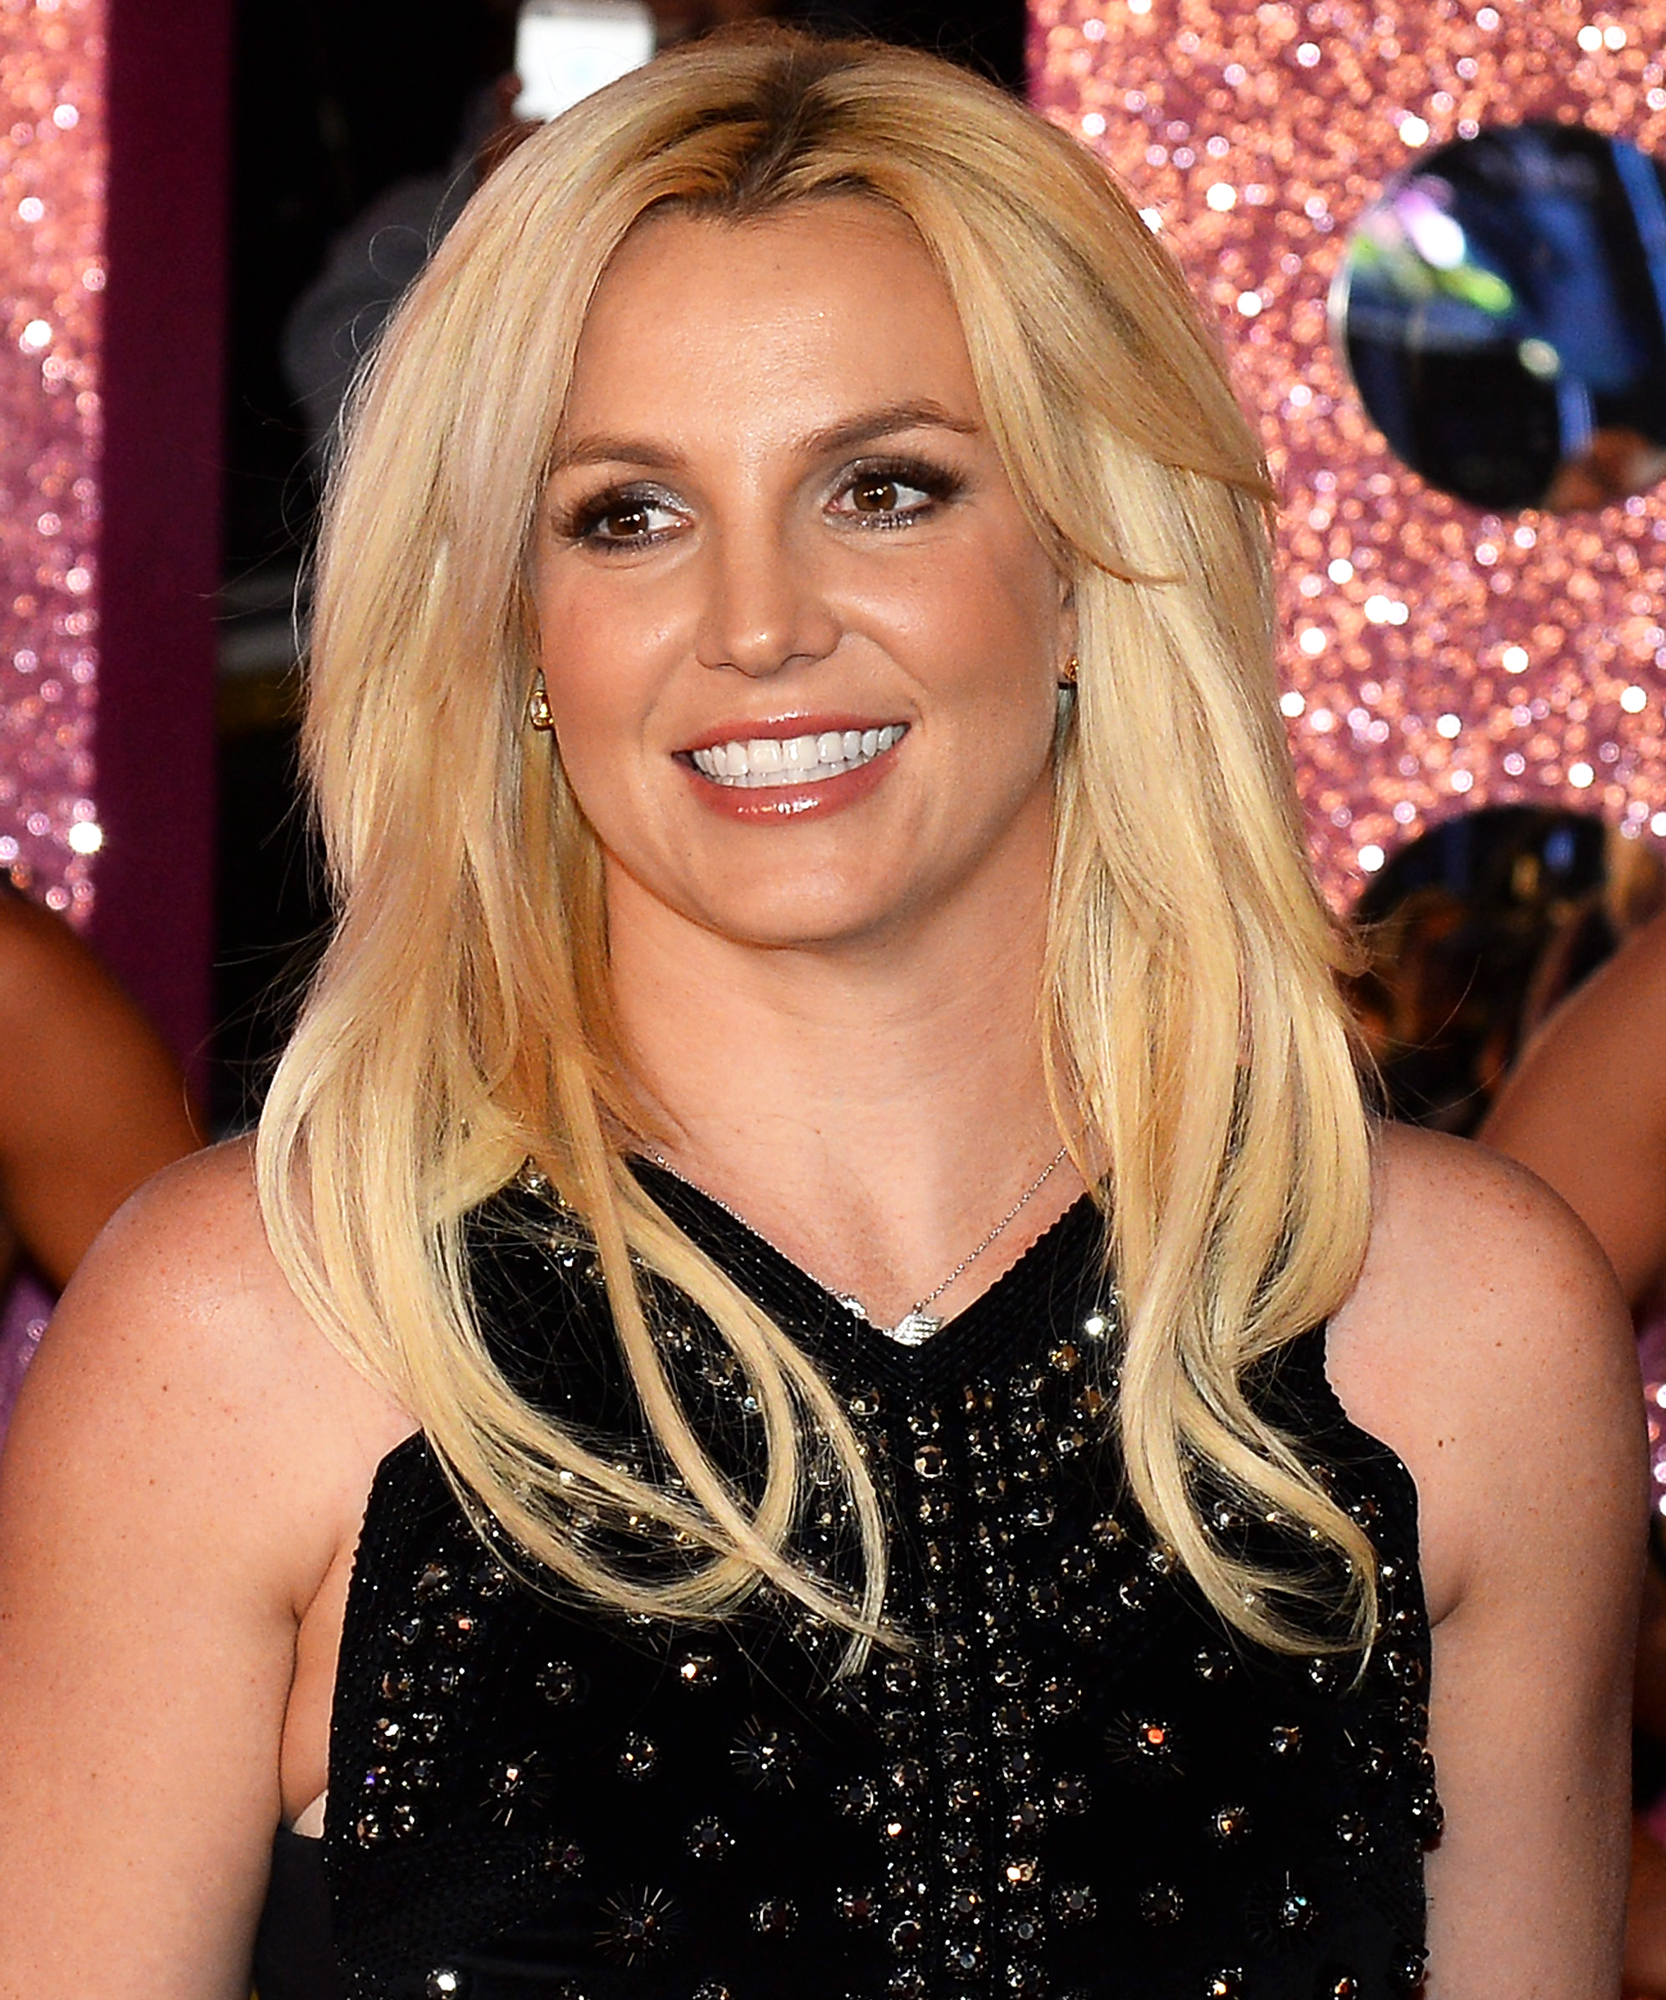 Britney Spears Shows Off Her Painting Skills While Wearing a Midriff-Baring Top